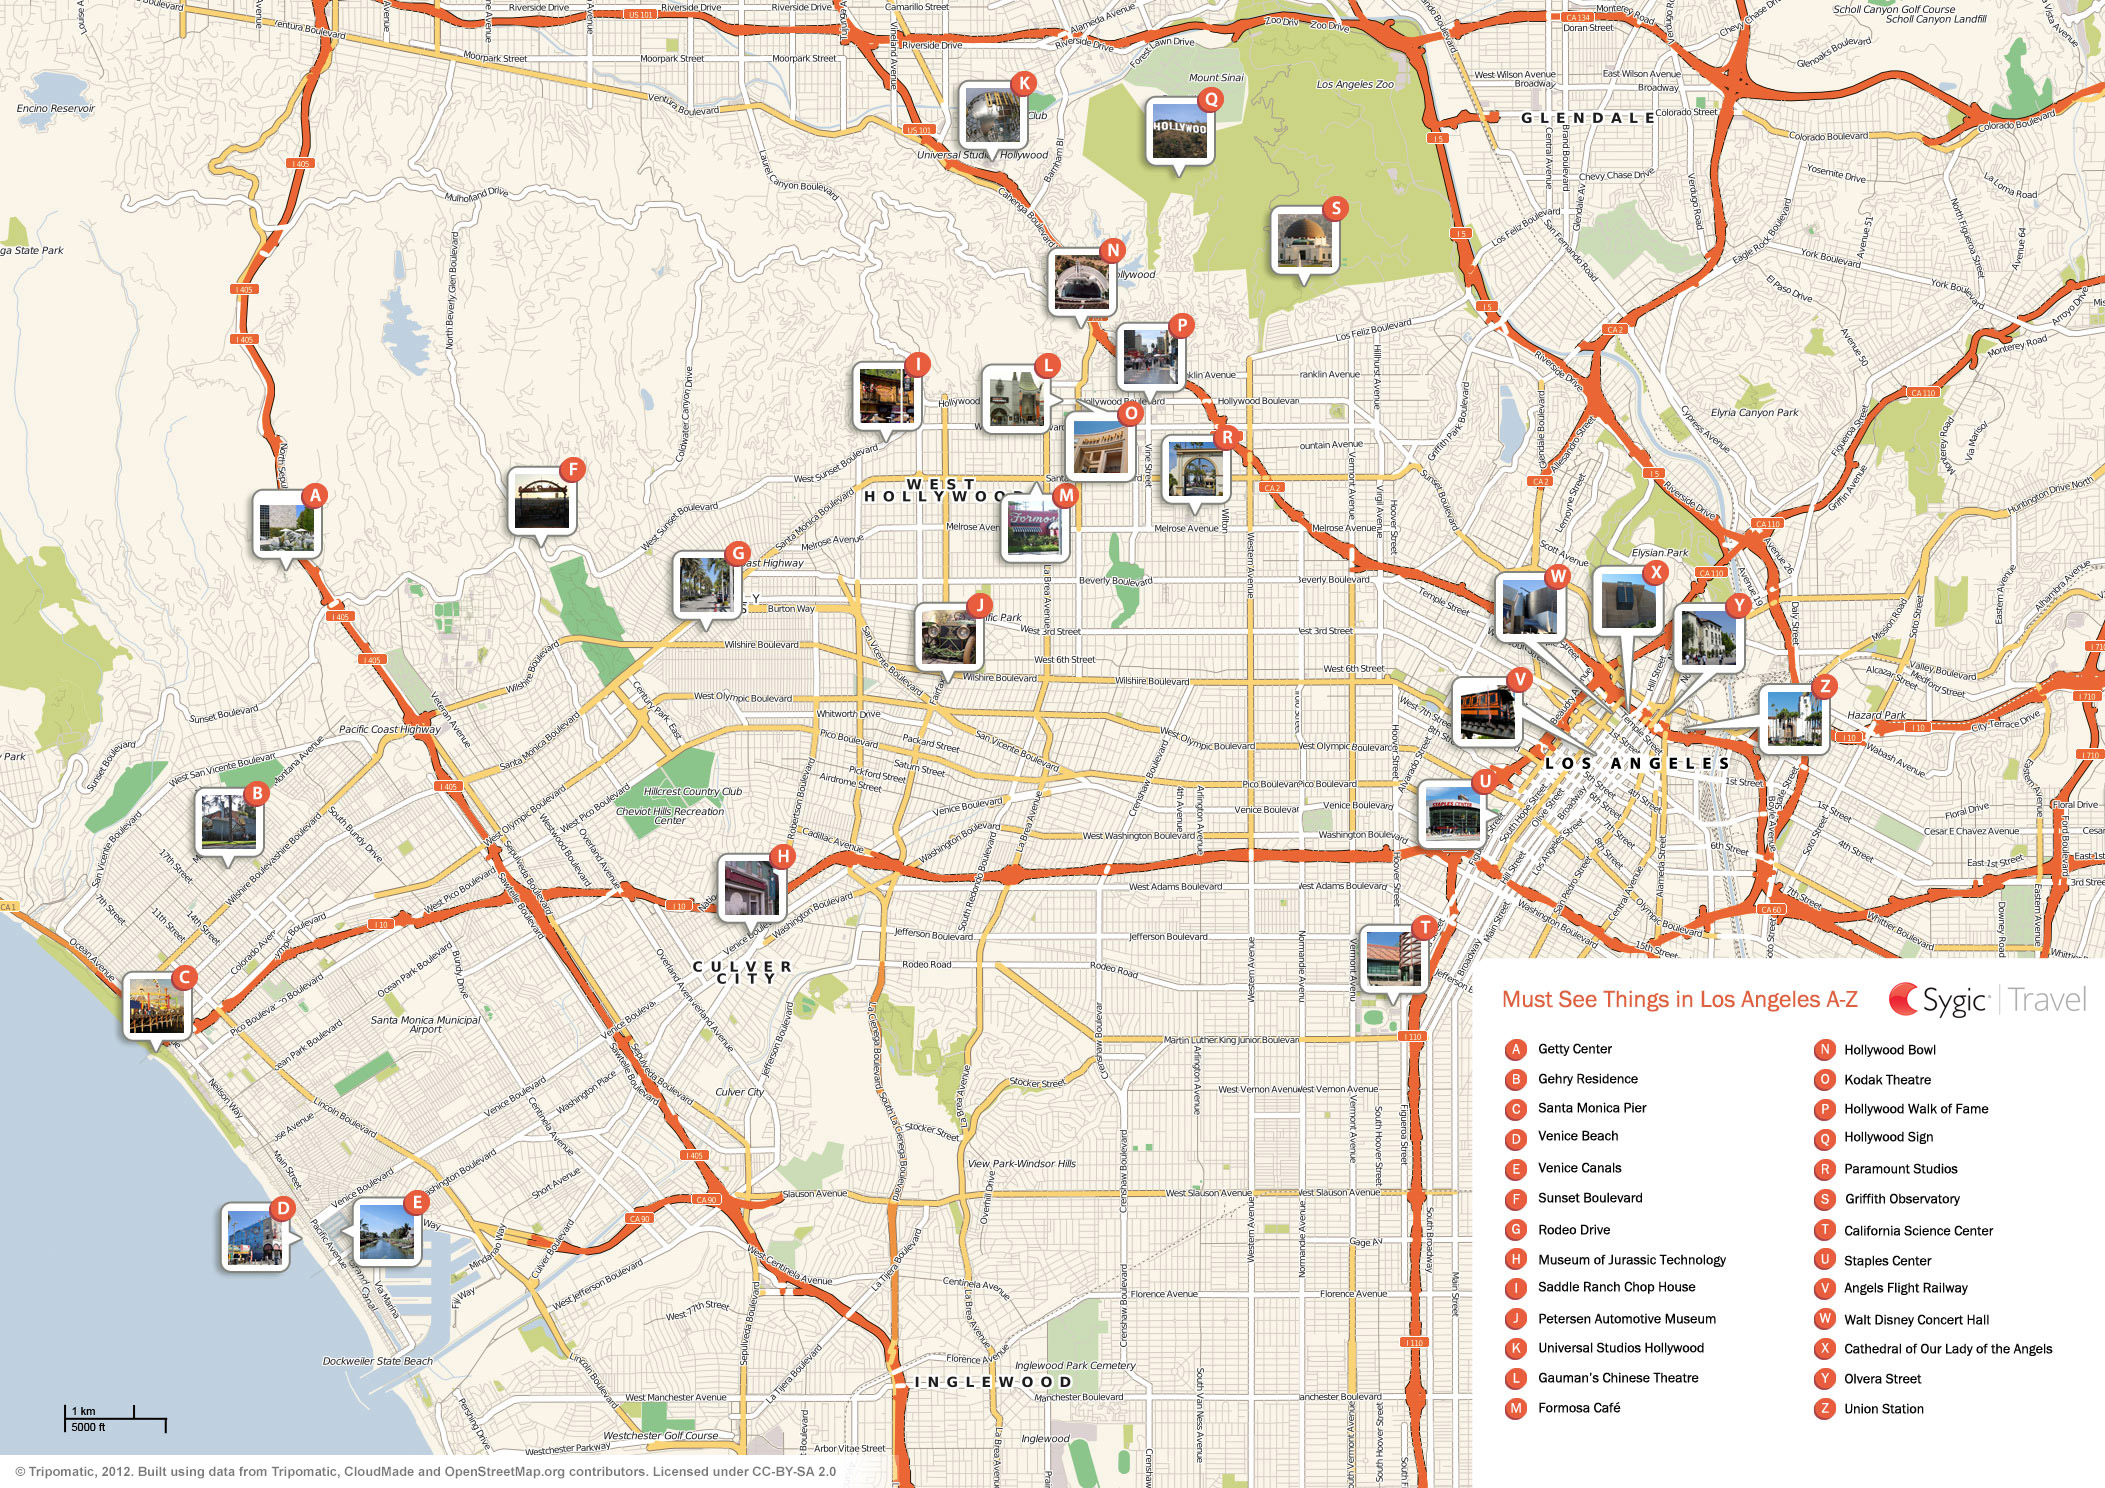 Los Angeles Printable Tourist Map – Tourist Map Of Las Vegas